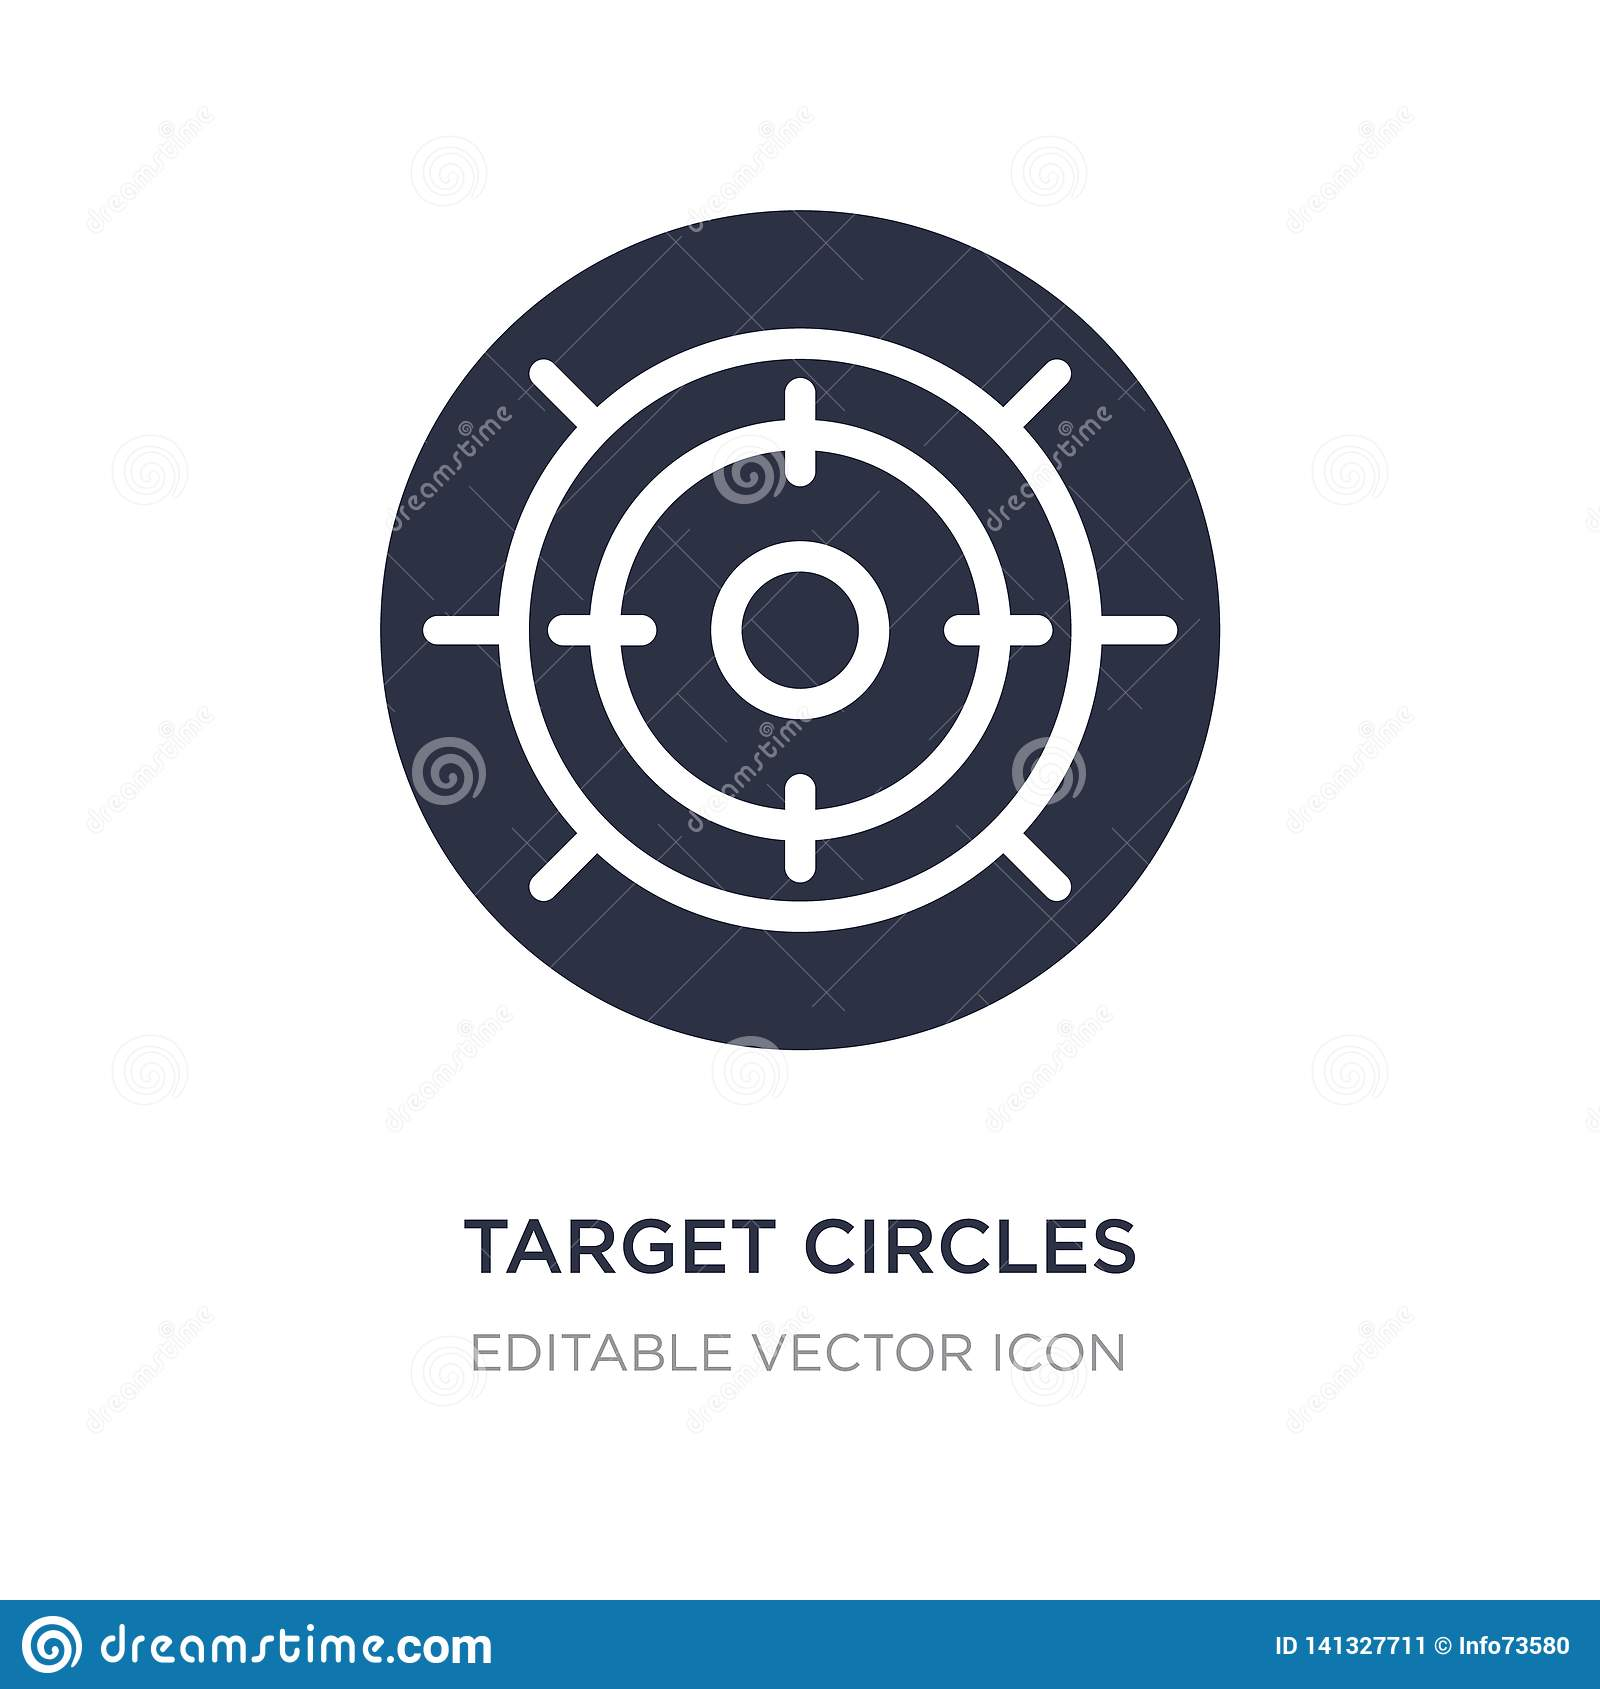 target circles icon on white background. Simple element illustration from Tools and utensils concept